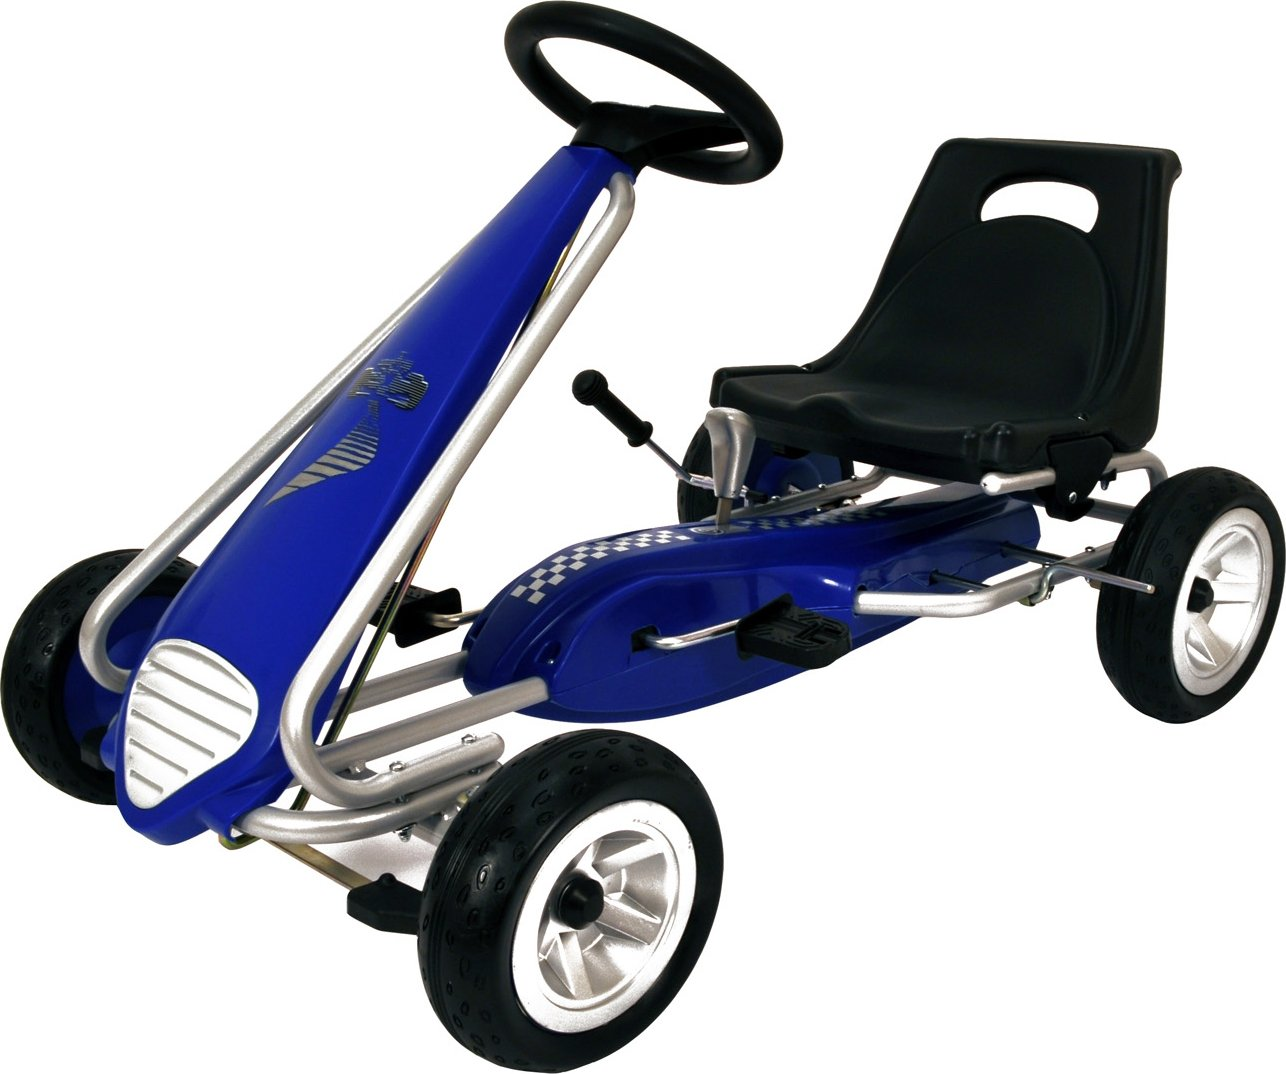 Kiddi-o by Kettler Pole Position Racer Pedal Car/Go Kart, Youth Ages 3+, Pedal  Cars - Amazon Canada